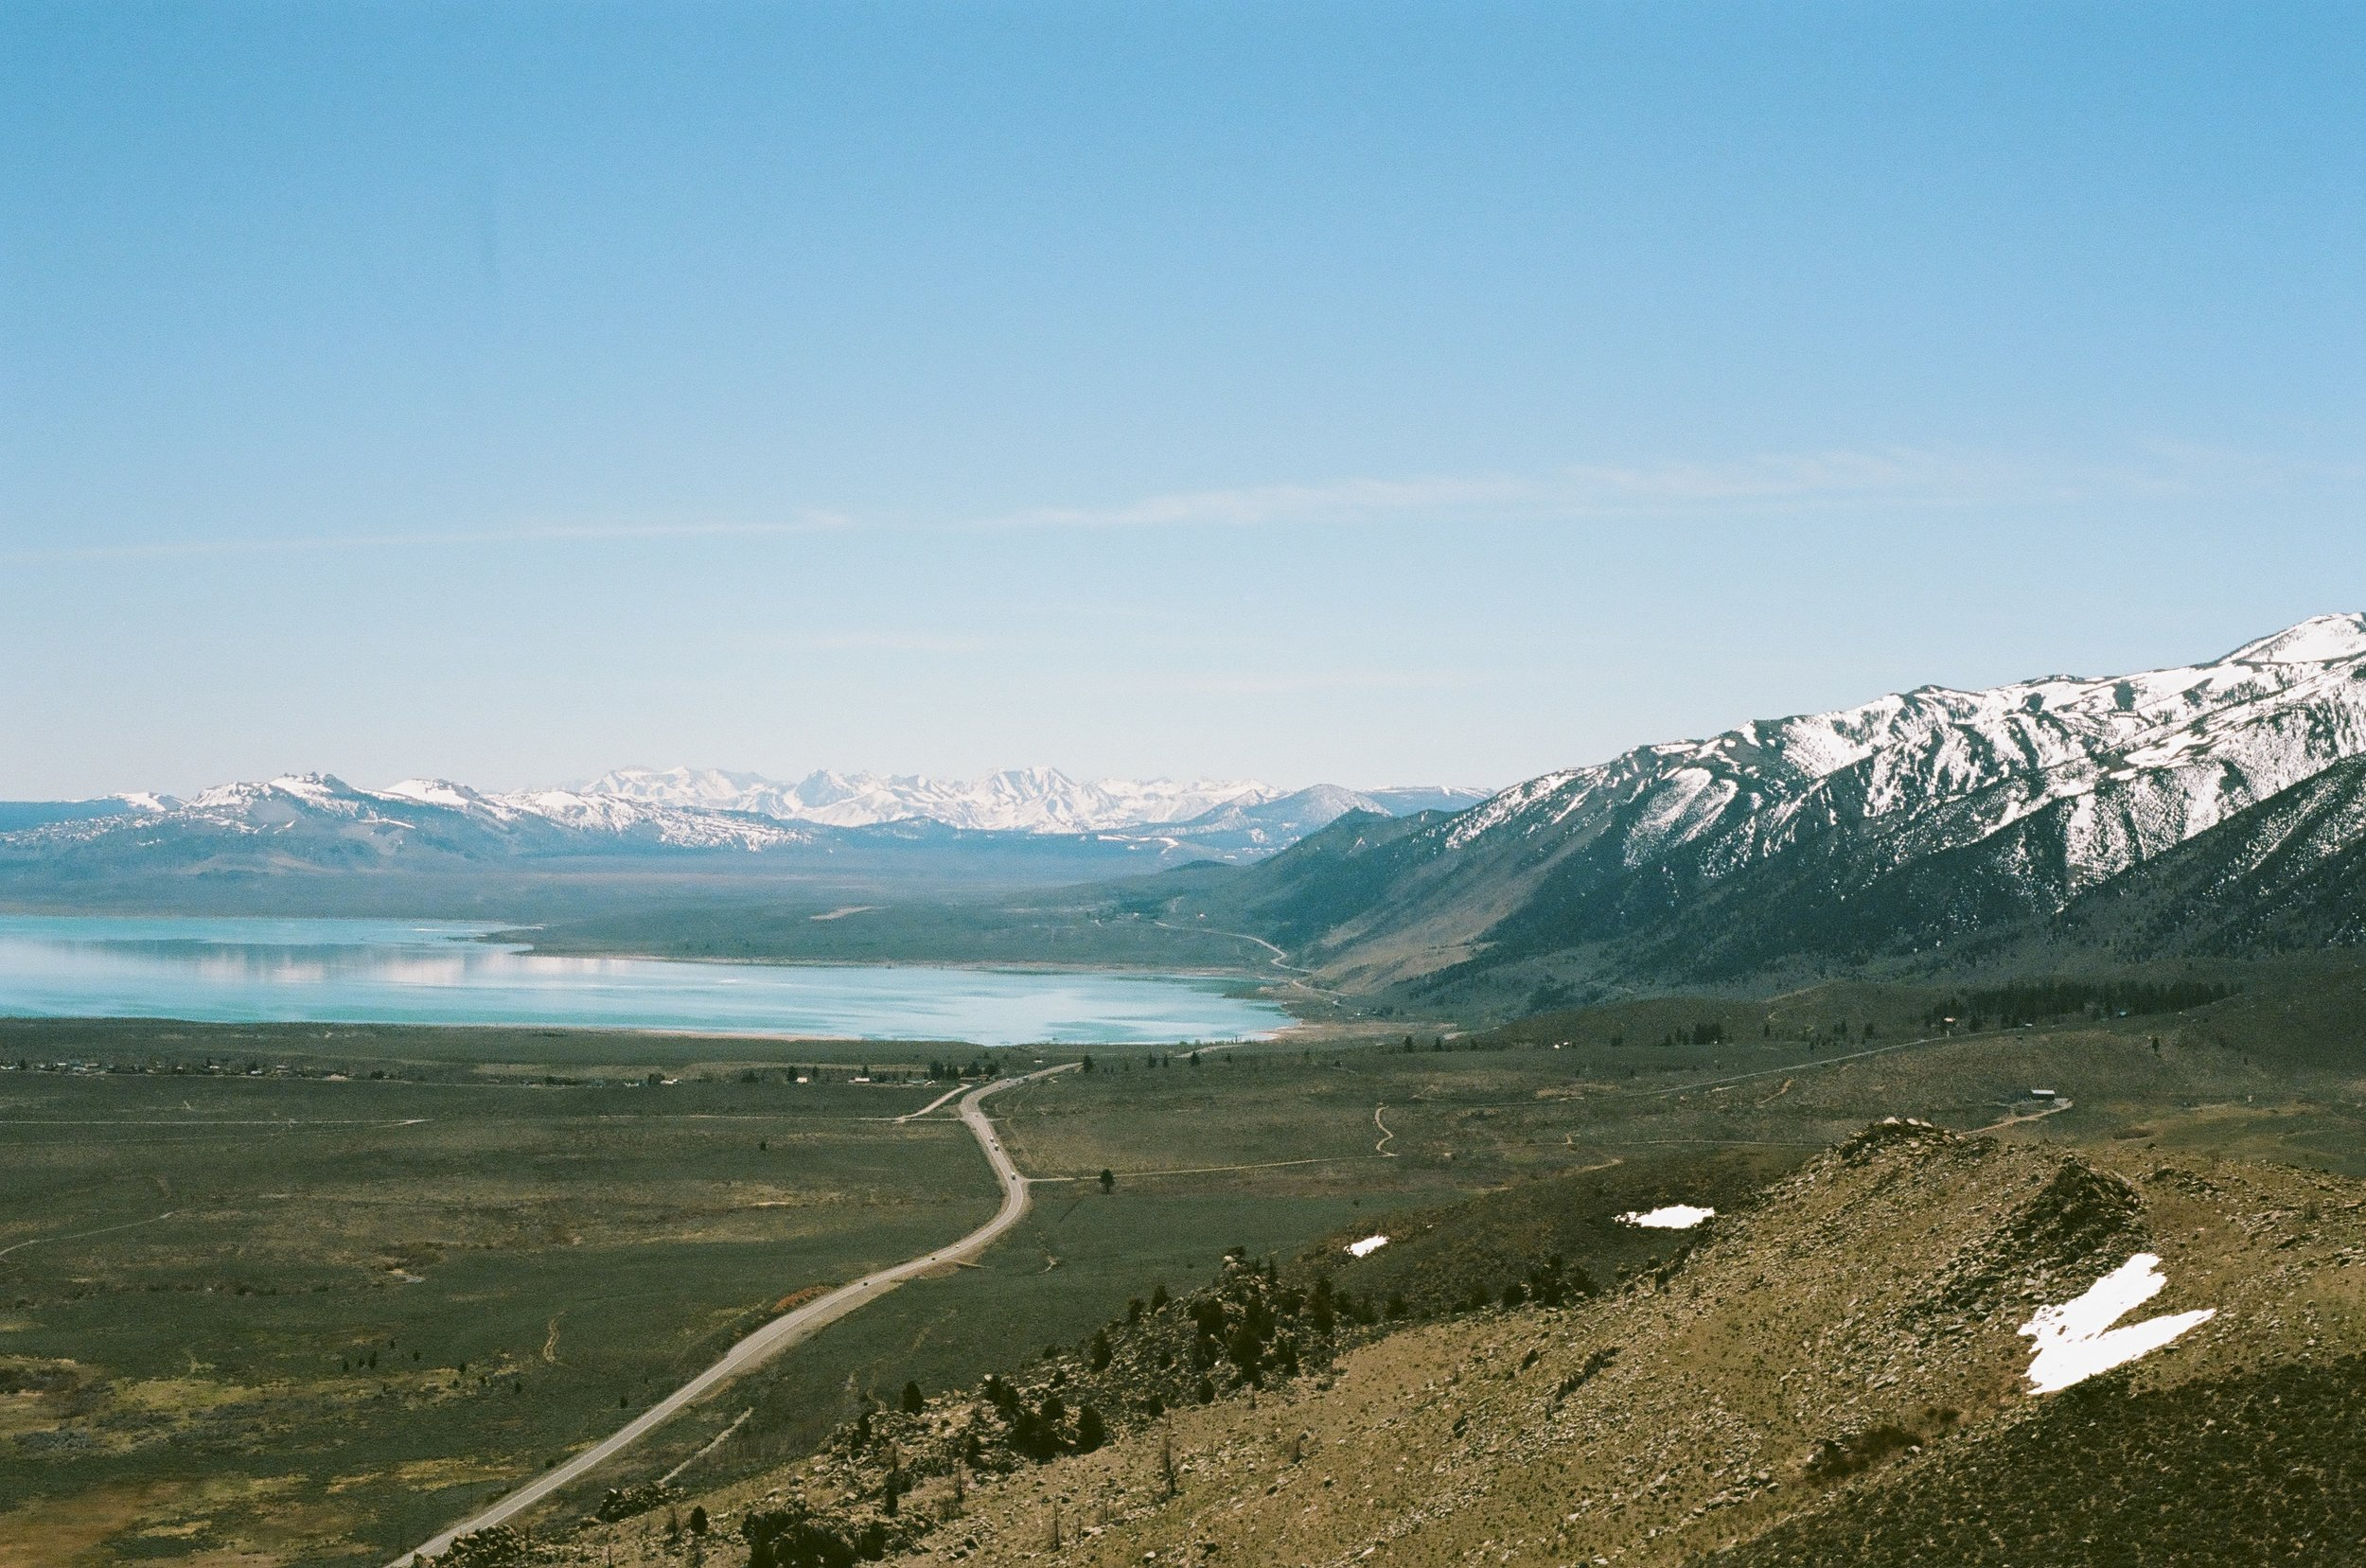 Road towards Mono Lake the next day, 35mm